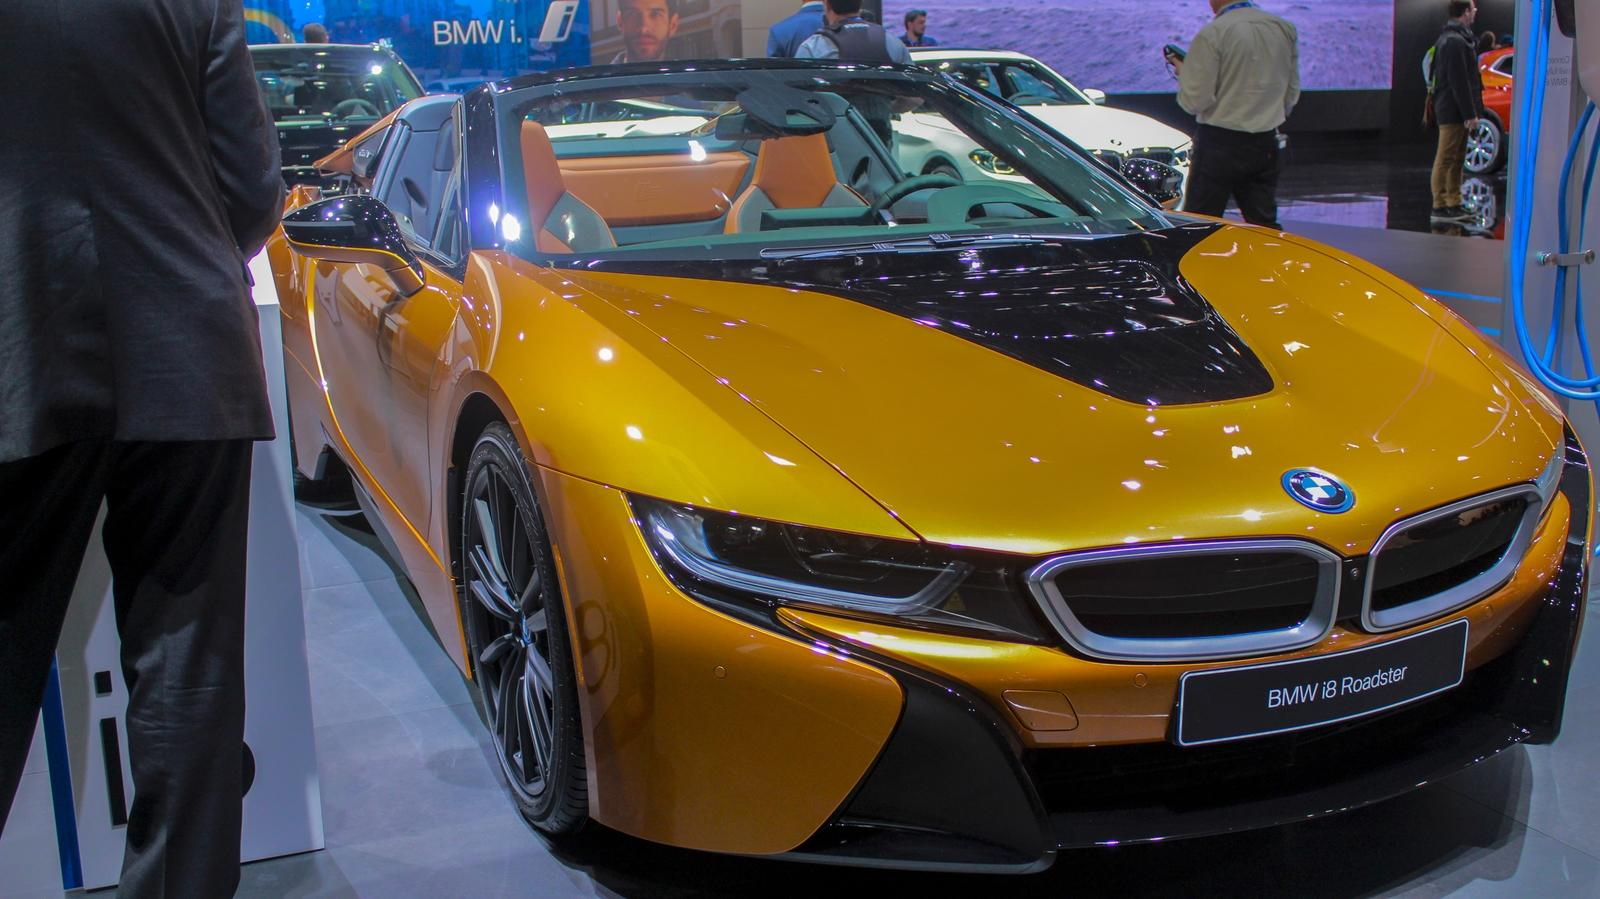 2019 bmw i8 roadster pictures  photos  wallpapers and videos